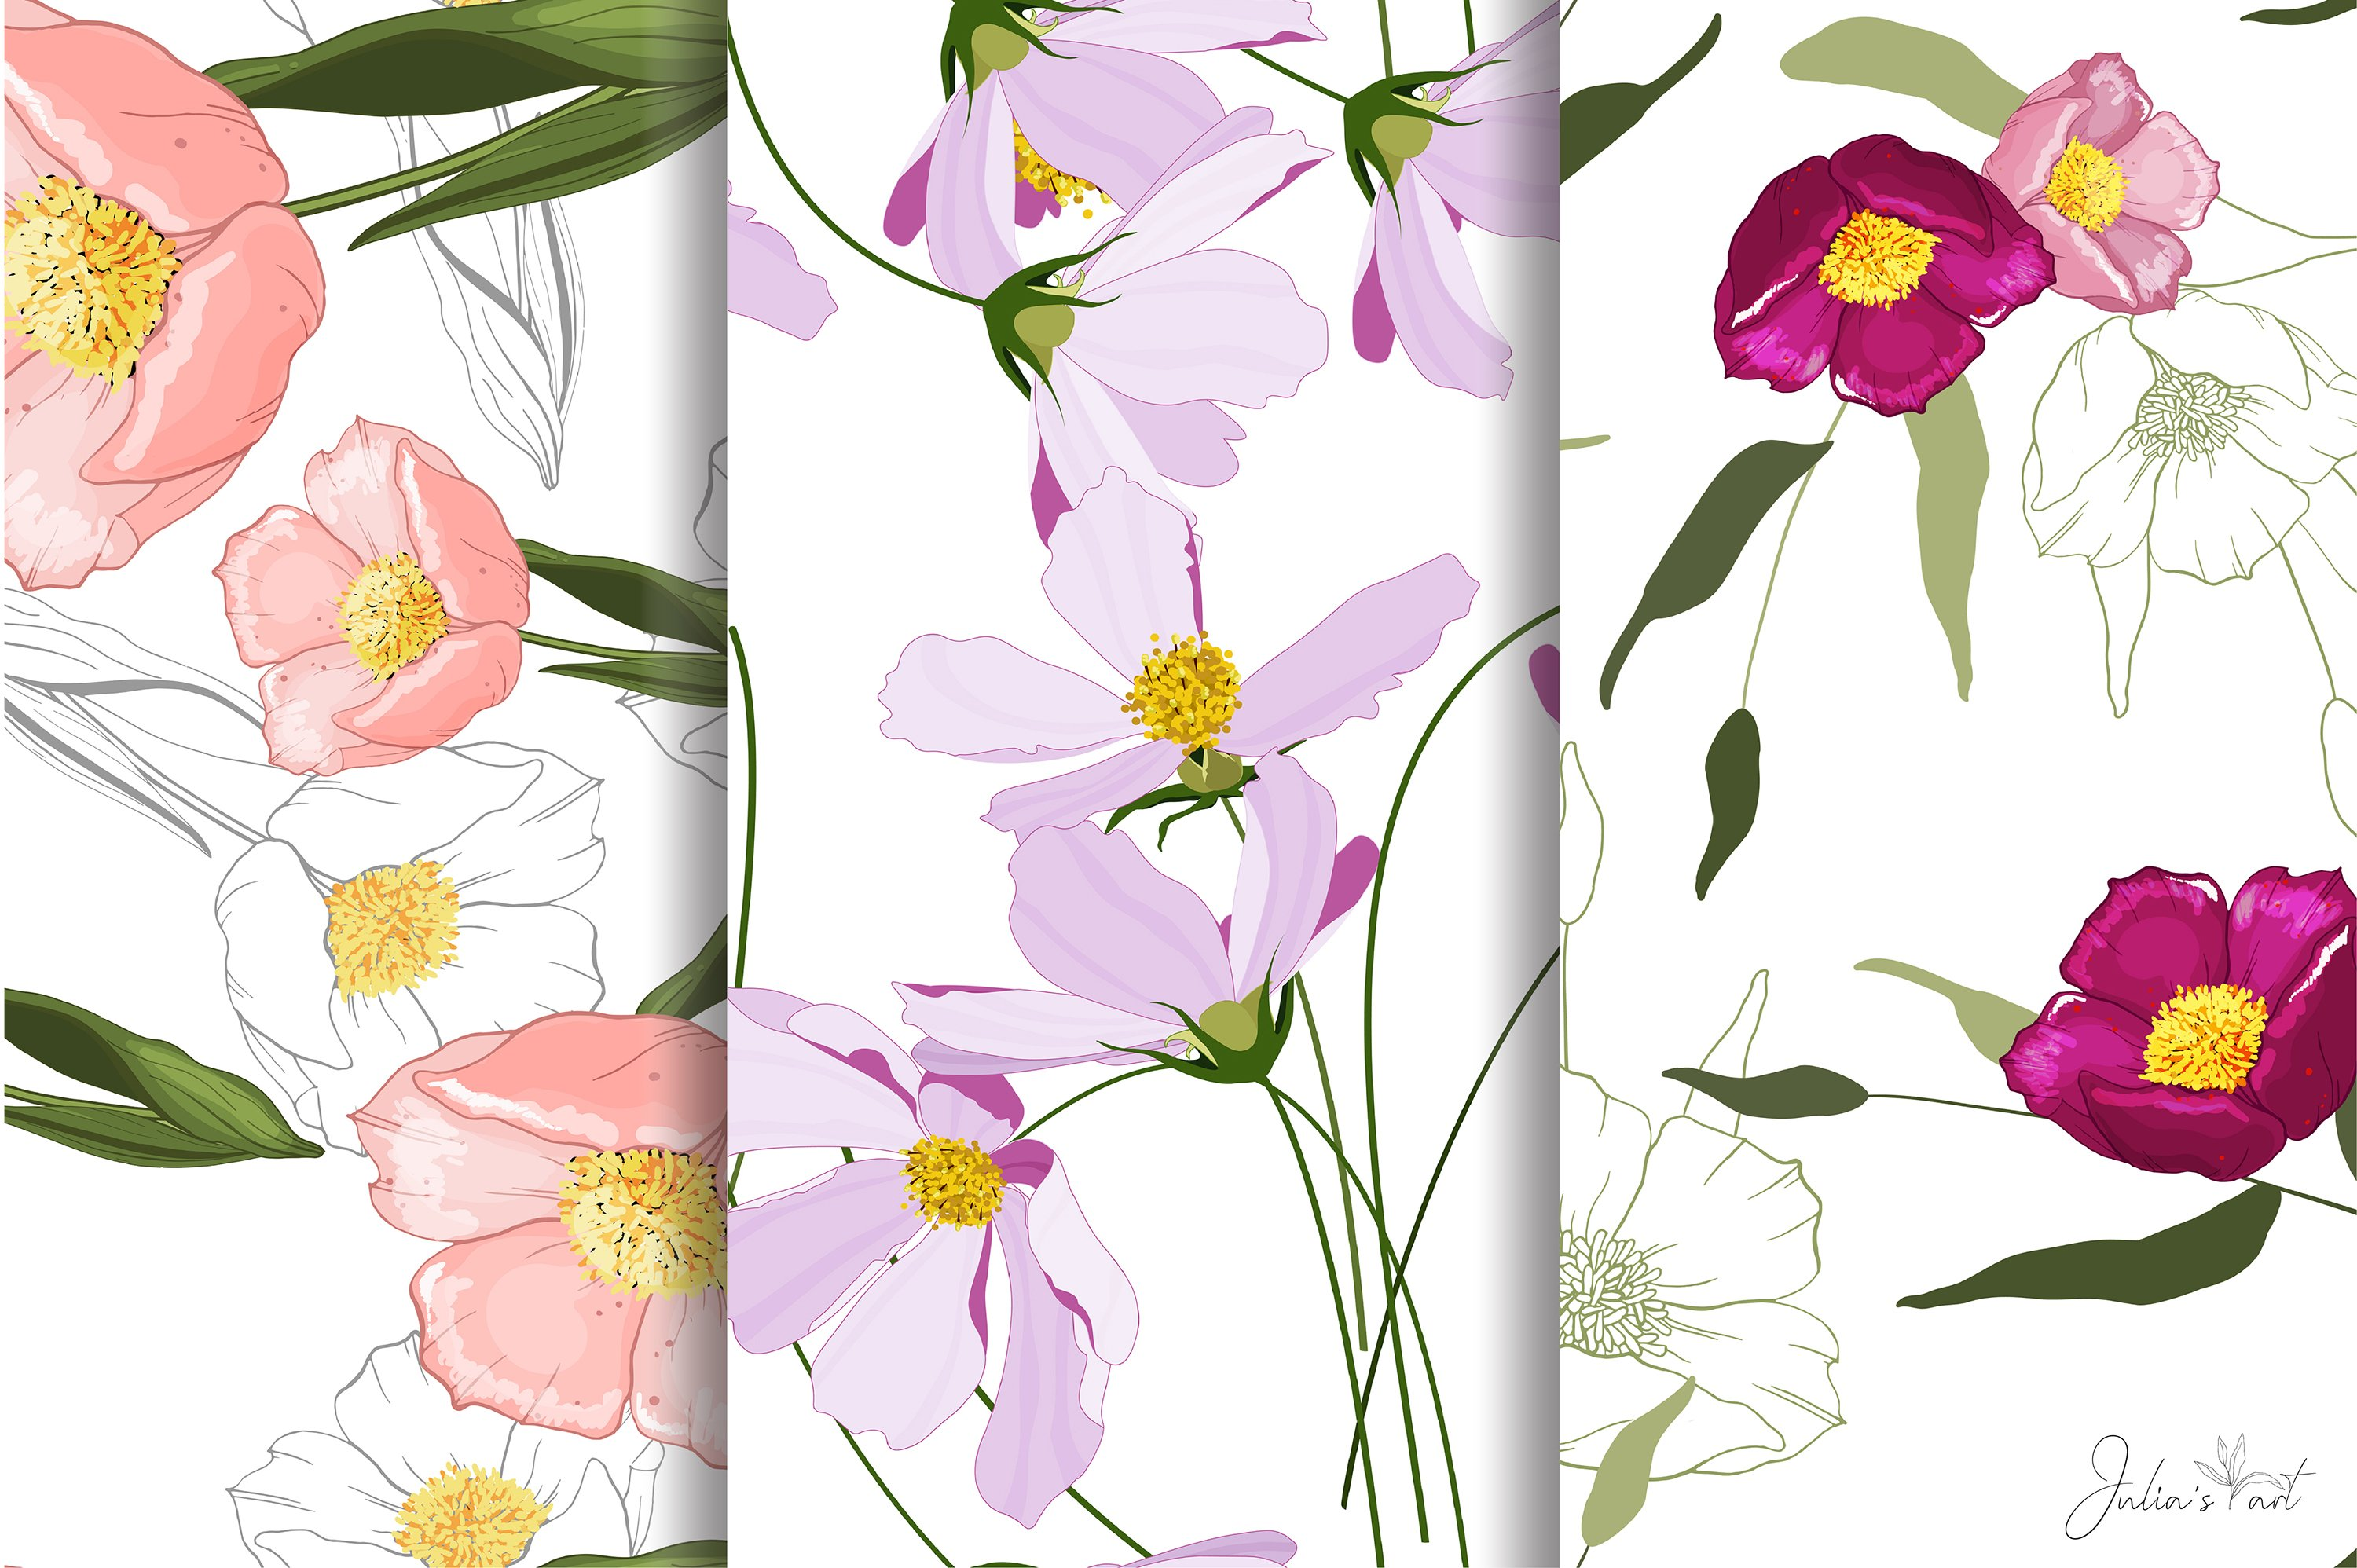 Pink flowers vector patterns - Ai, EPS, JPG, PNG example image 2